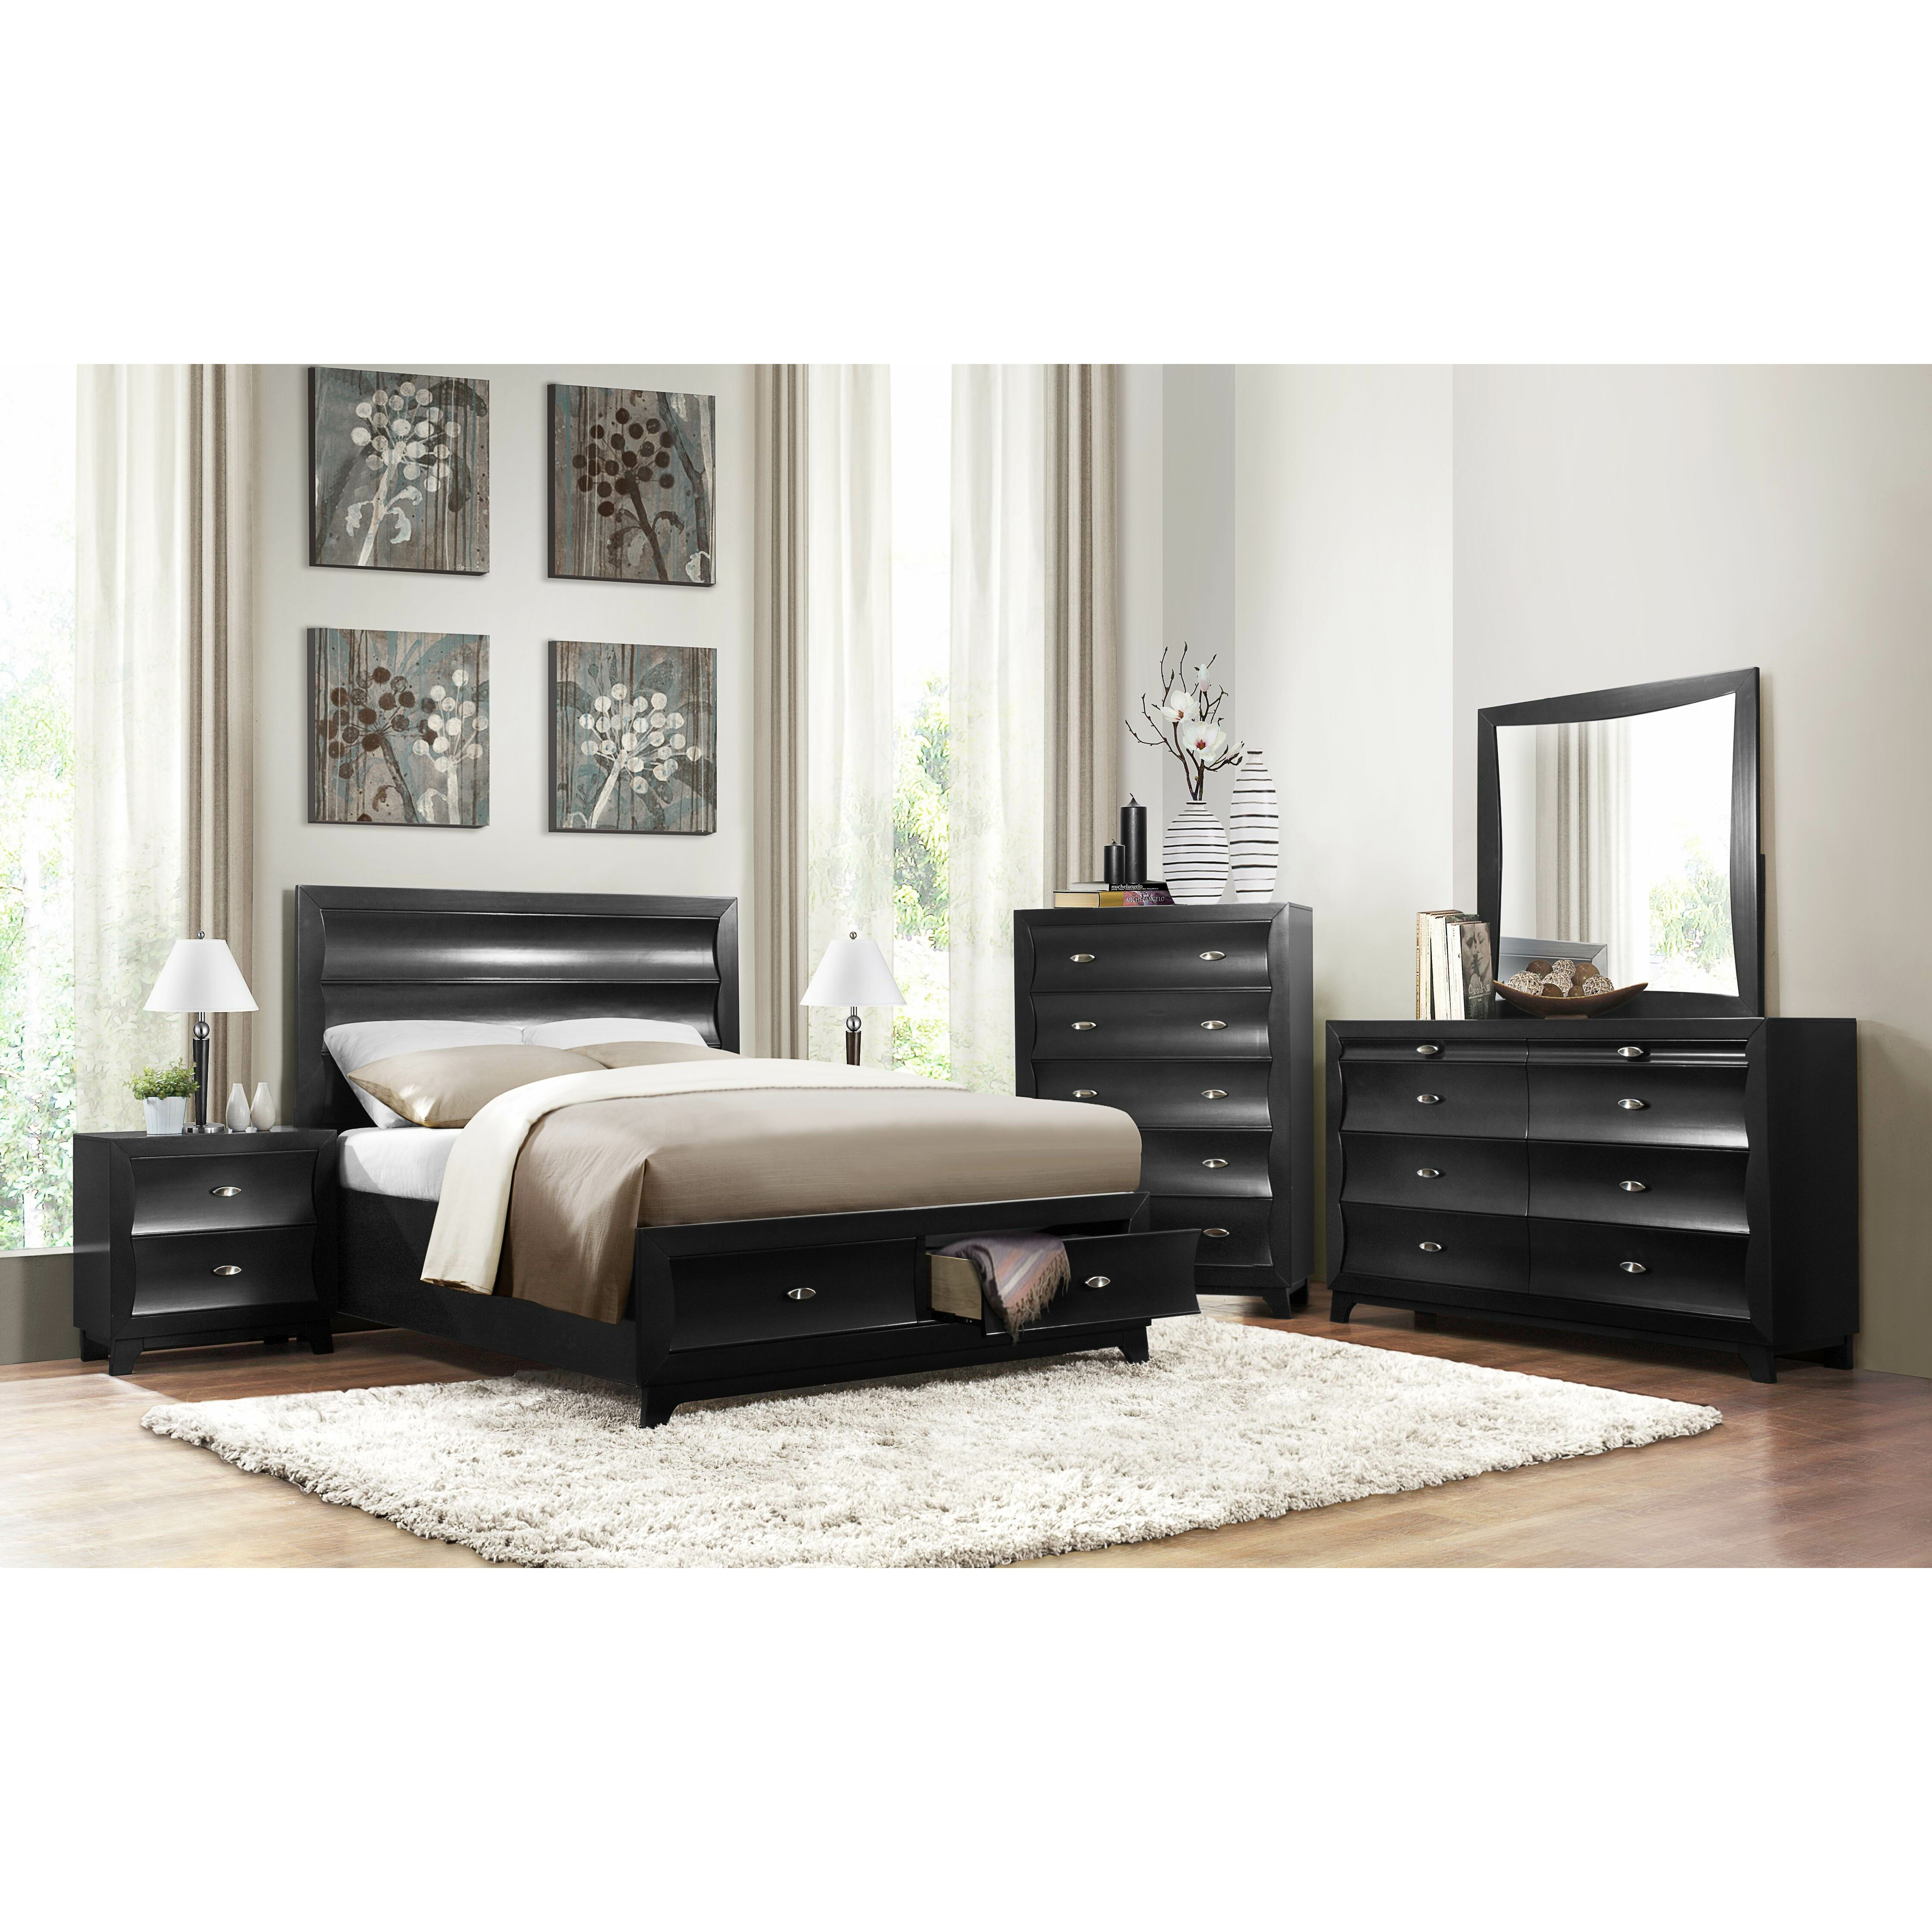 Woodbridge Home Designs Furniture Ornate Wooden Ikea